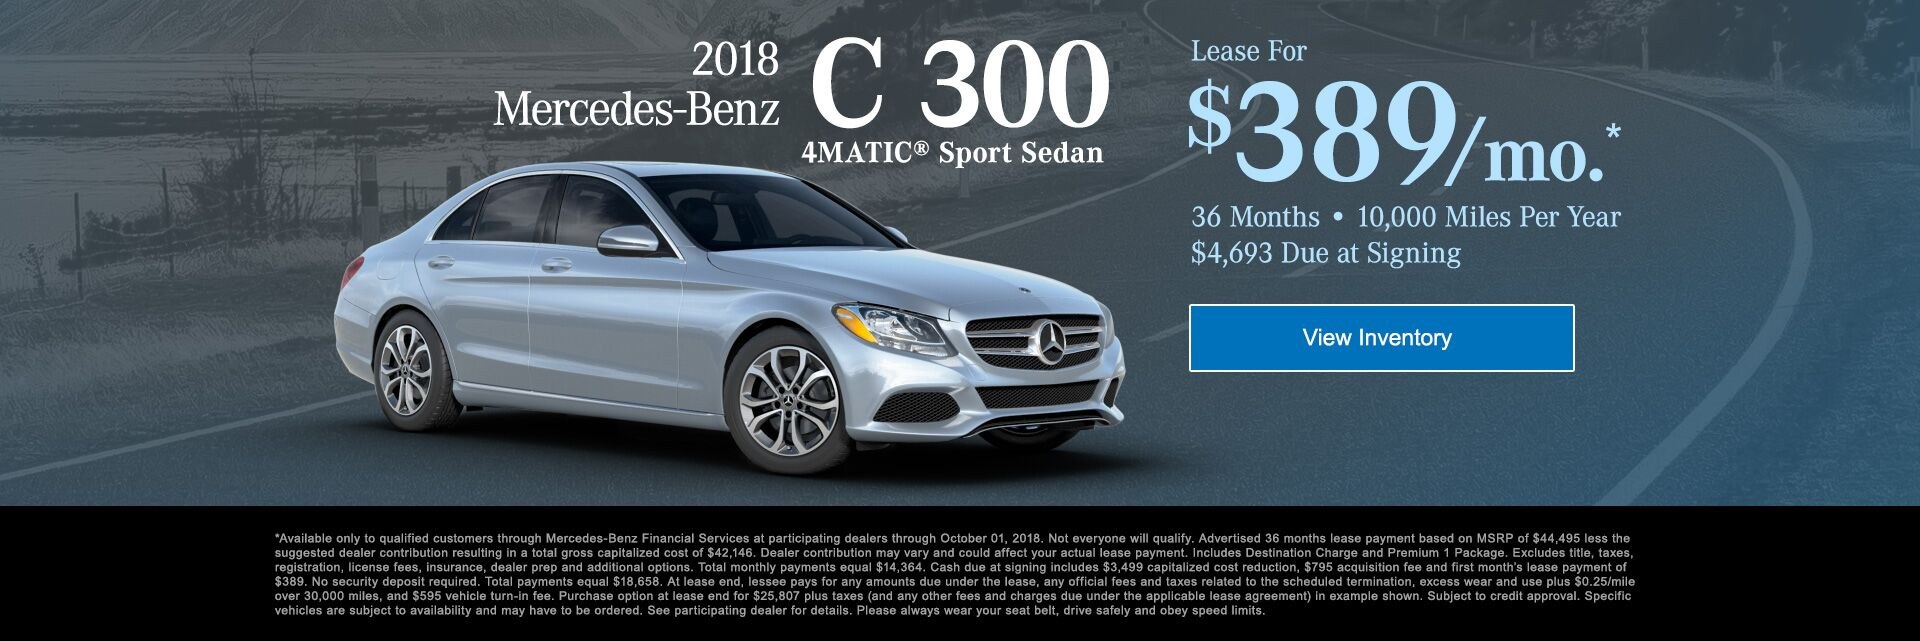 2018_Mercedes-Benz_C300_4MATIC®_Sport_Sedan